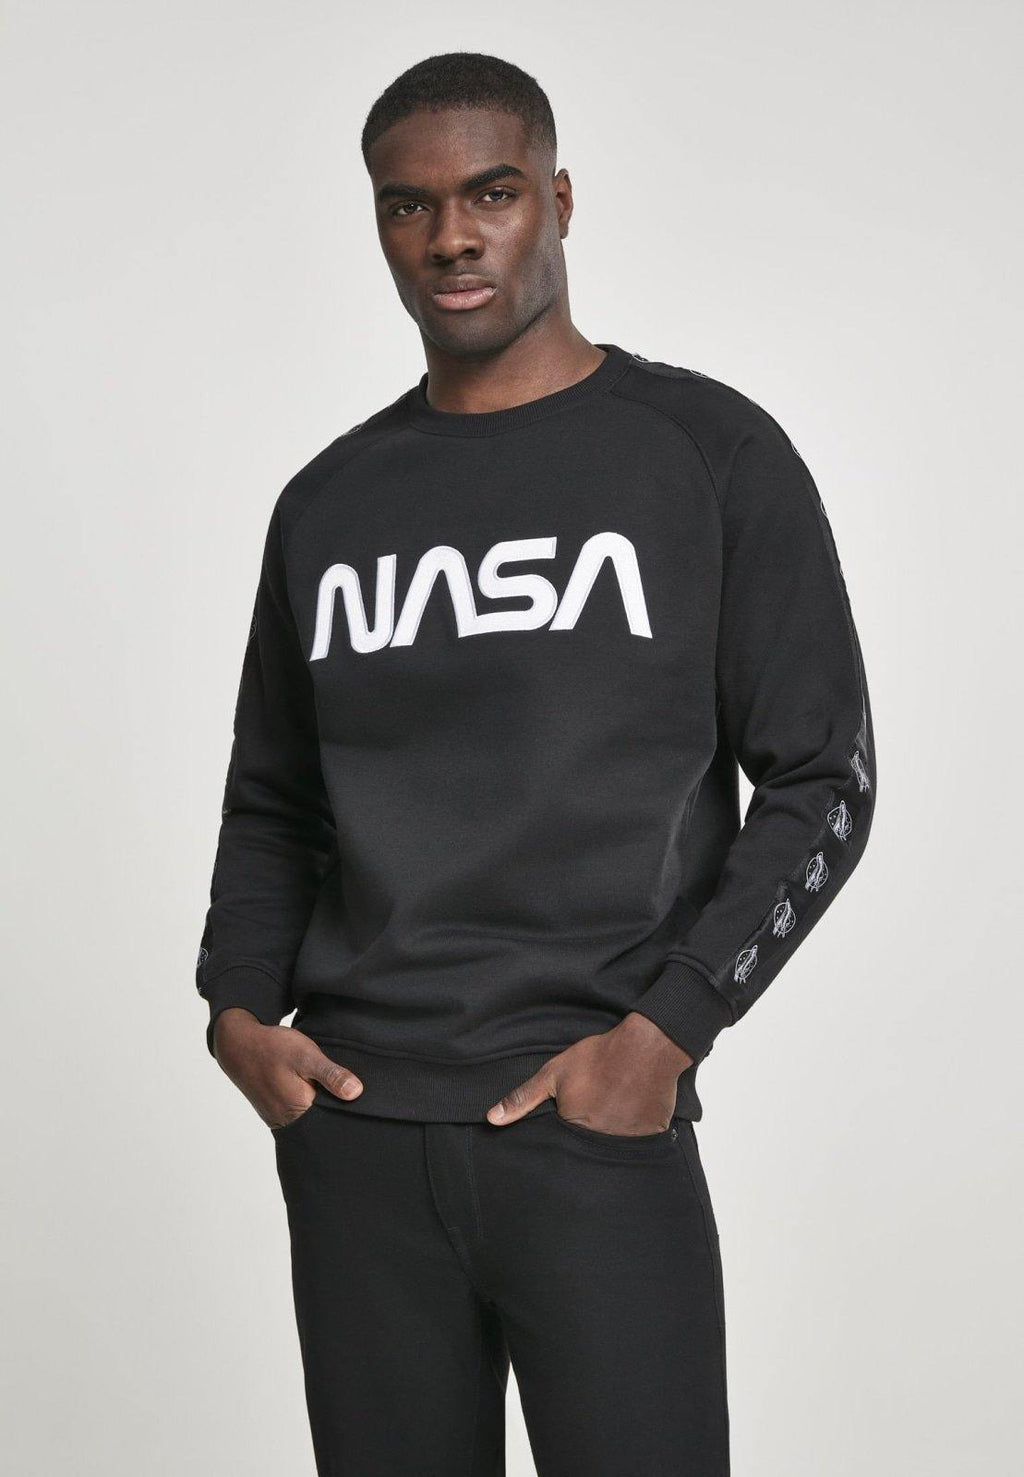 NASA Wormlogo Rocket Tape Sweatshirt - DadiTude